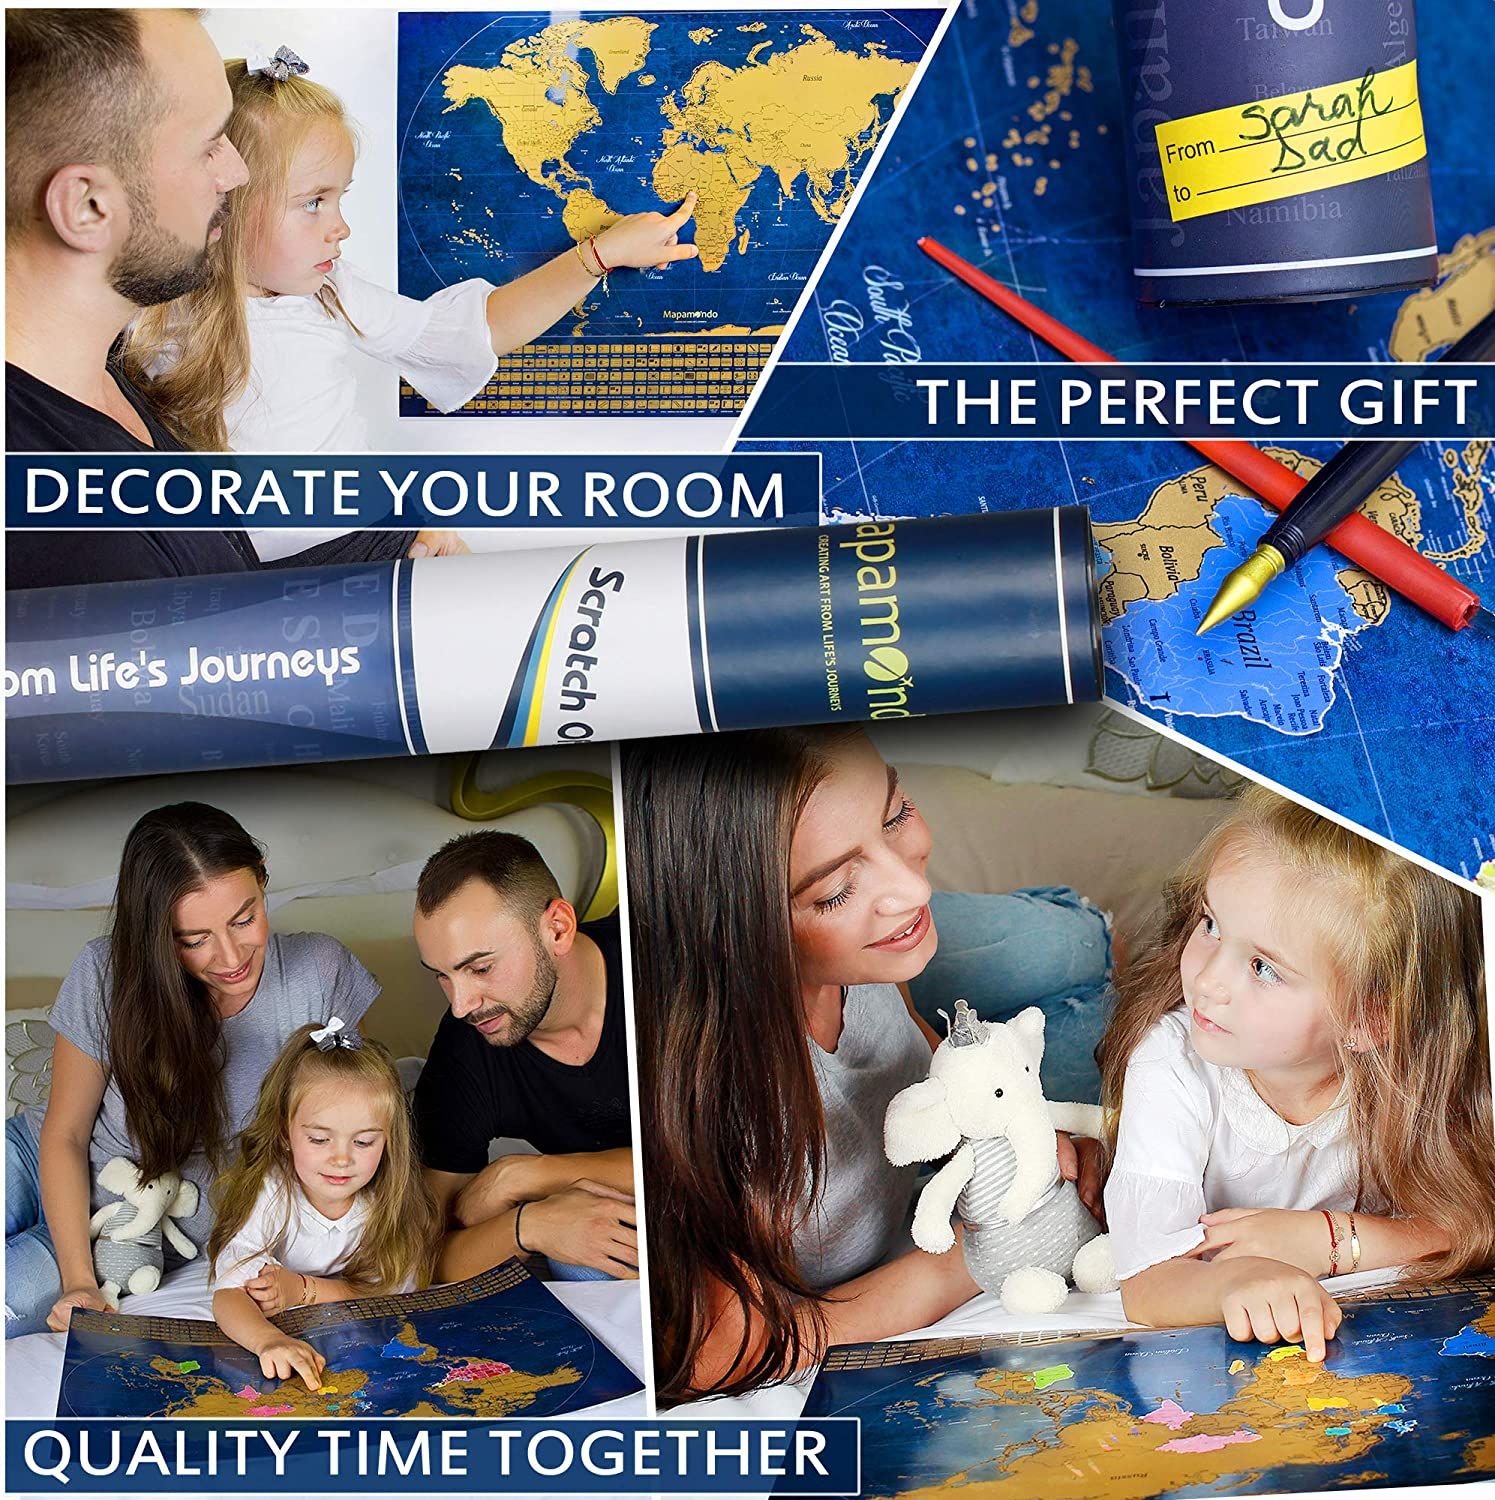 Gift Packaging Vibrant Colors Best Gift for Travelers Detailed Travel Maps with Landmarks and Flags Complete Set Mapamondo Scratch Off Map of The World and US Map Poster